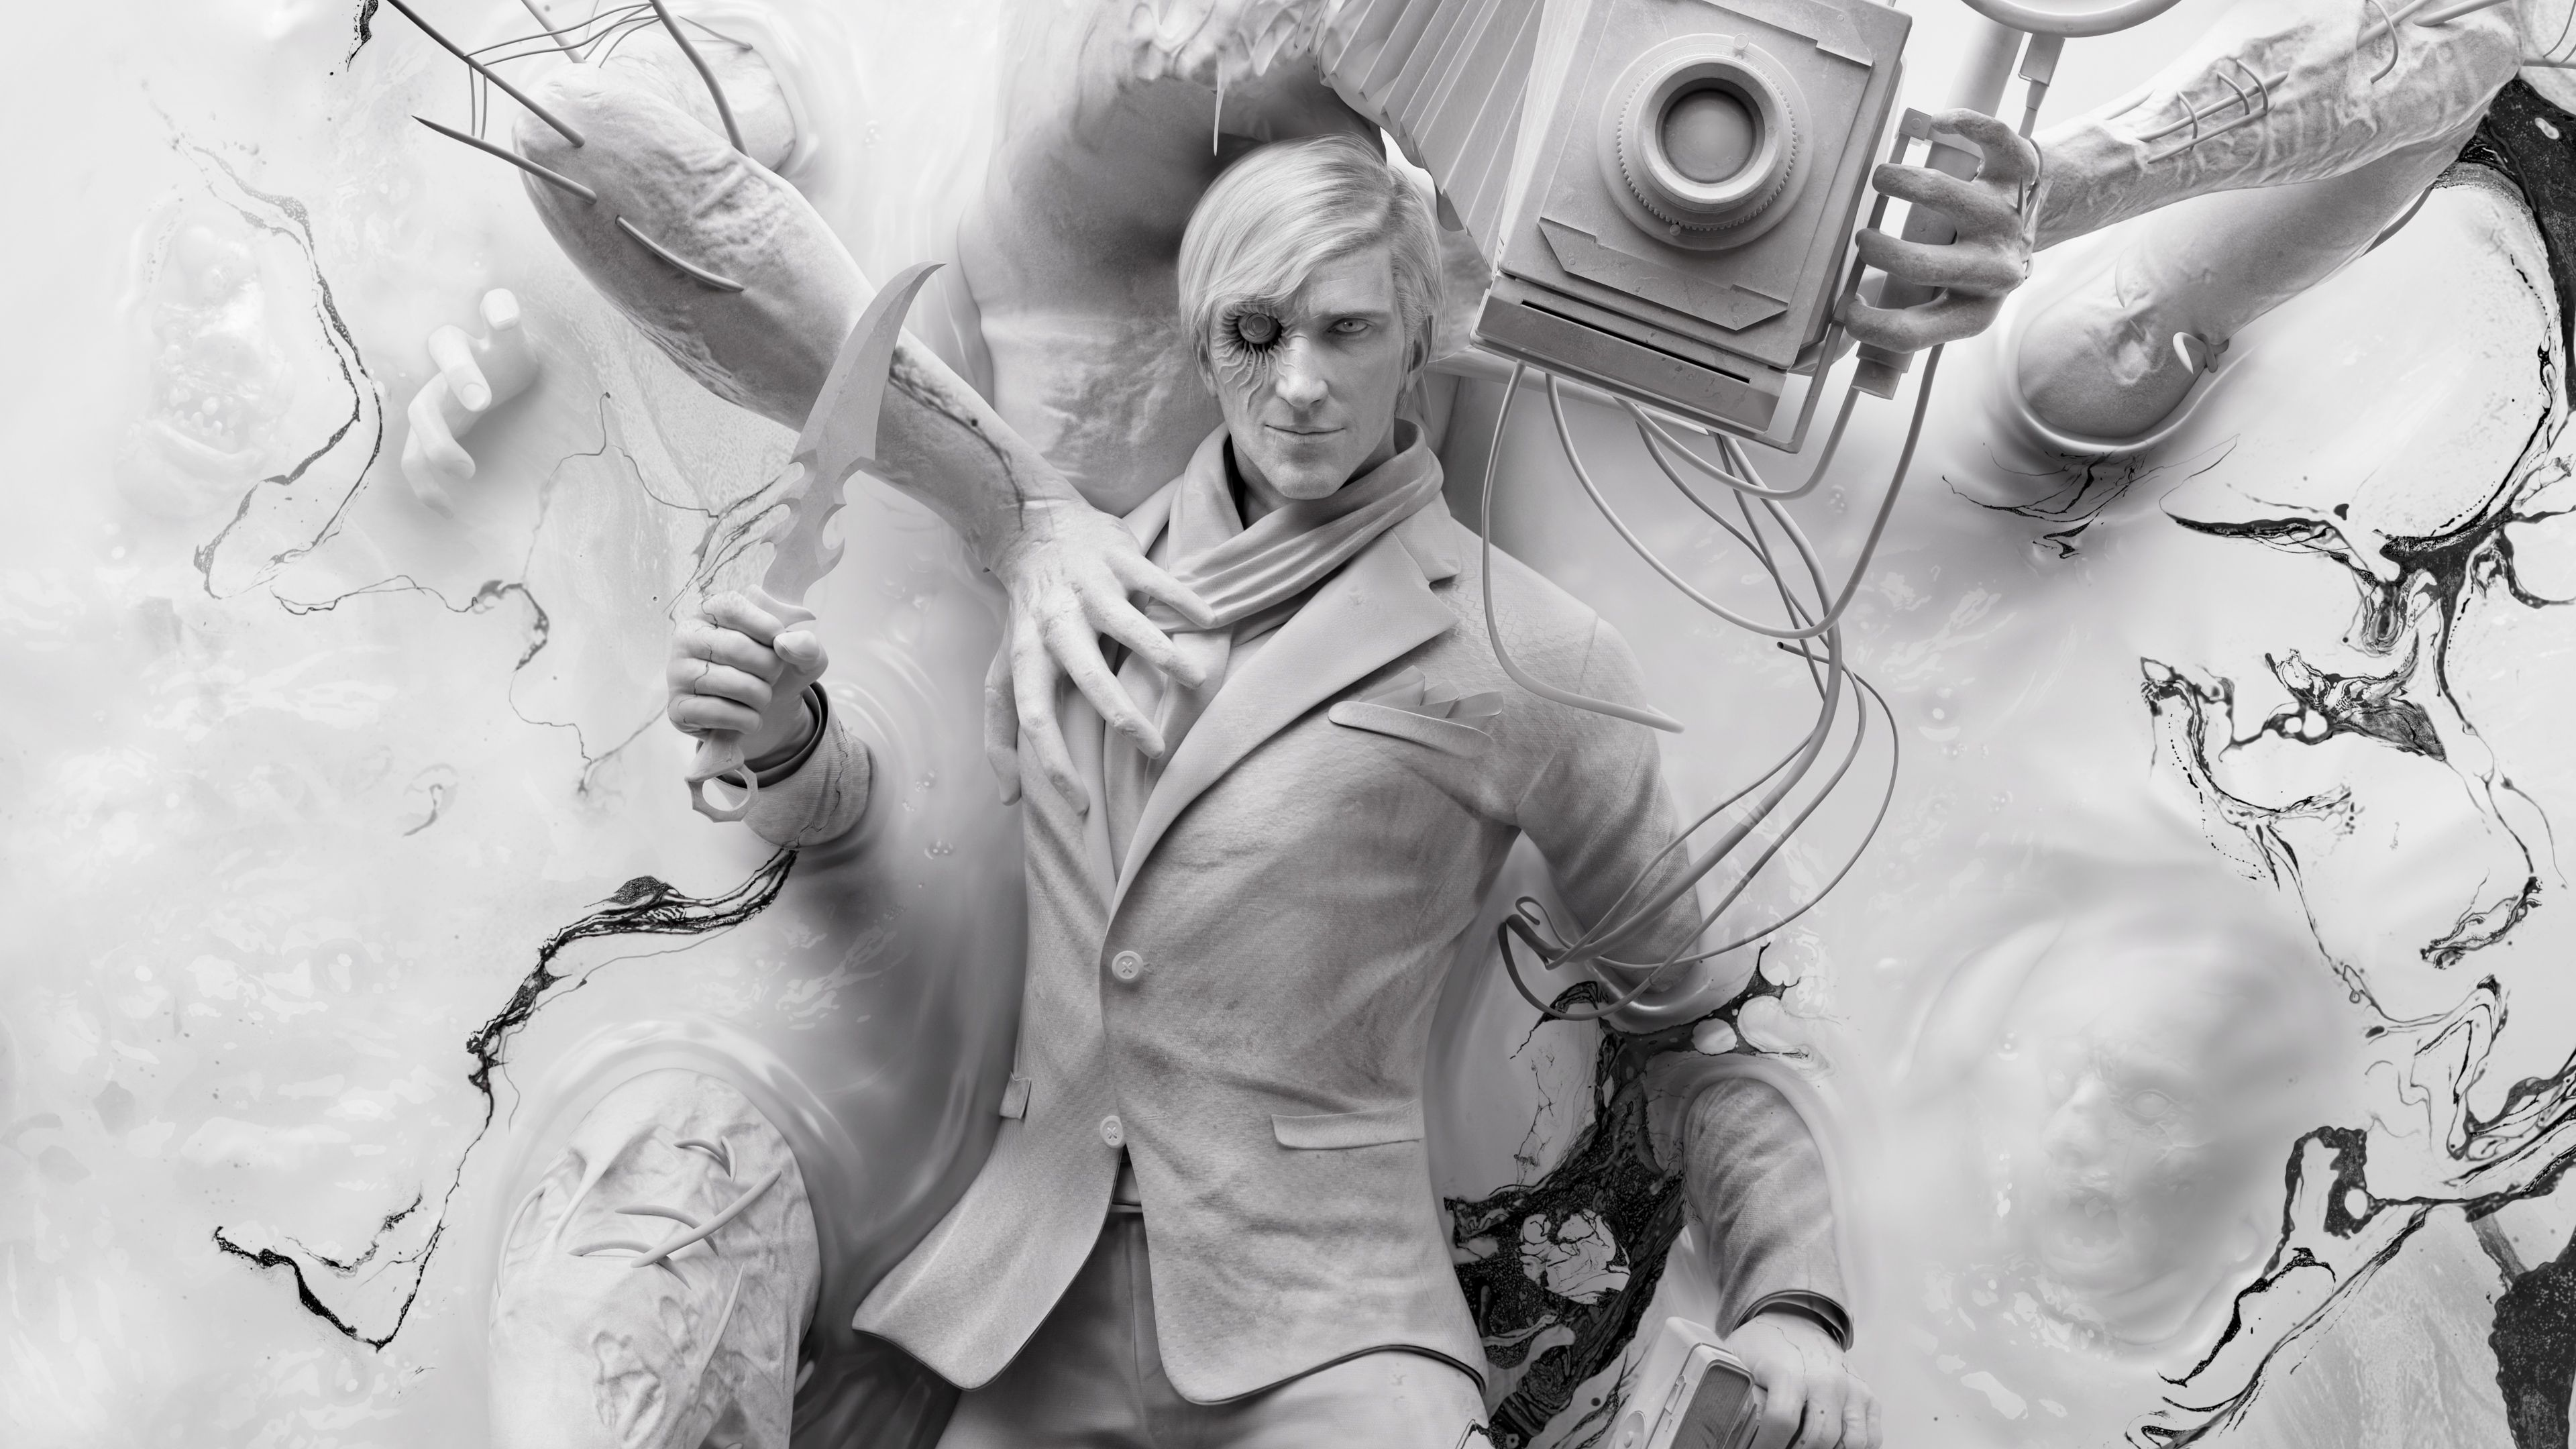 Download Page 4k The Evil Within 2 Stefano And Obscura The